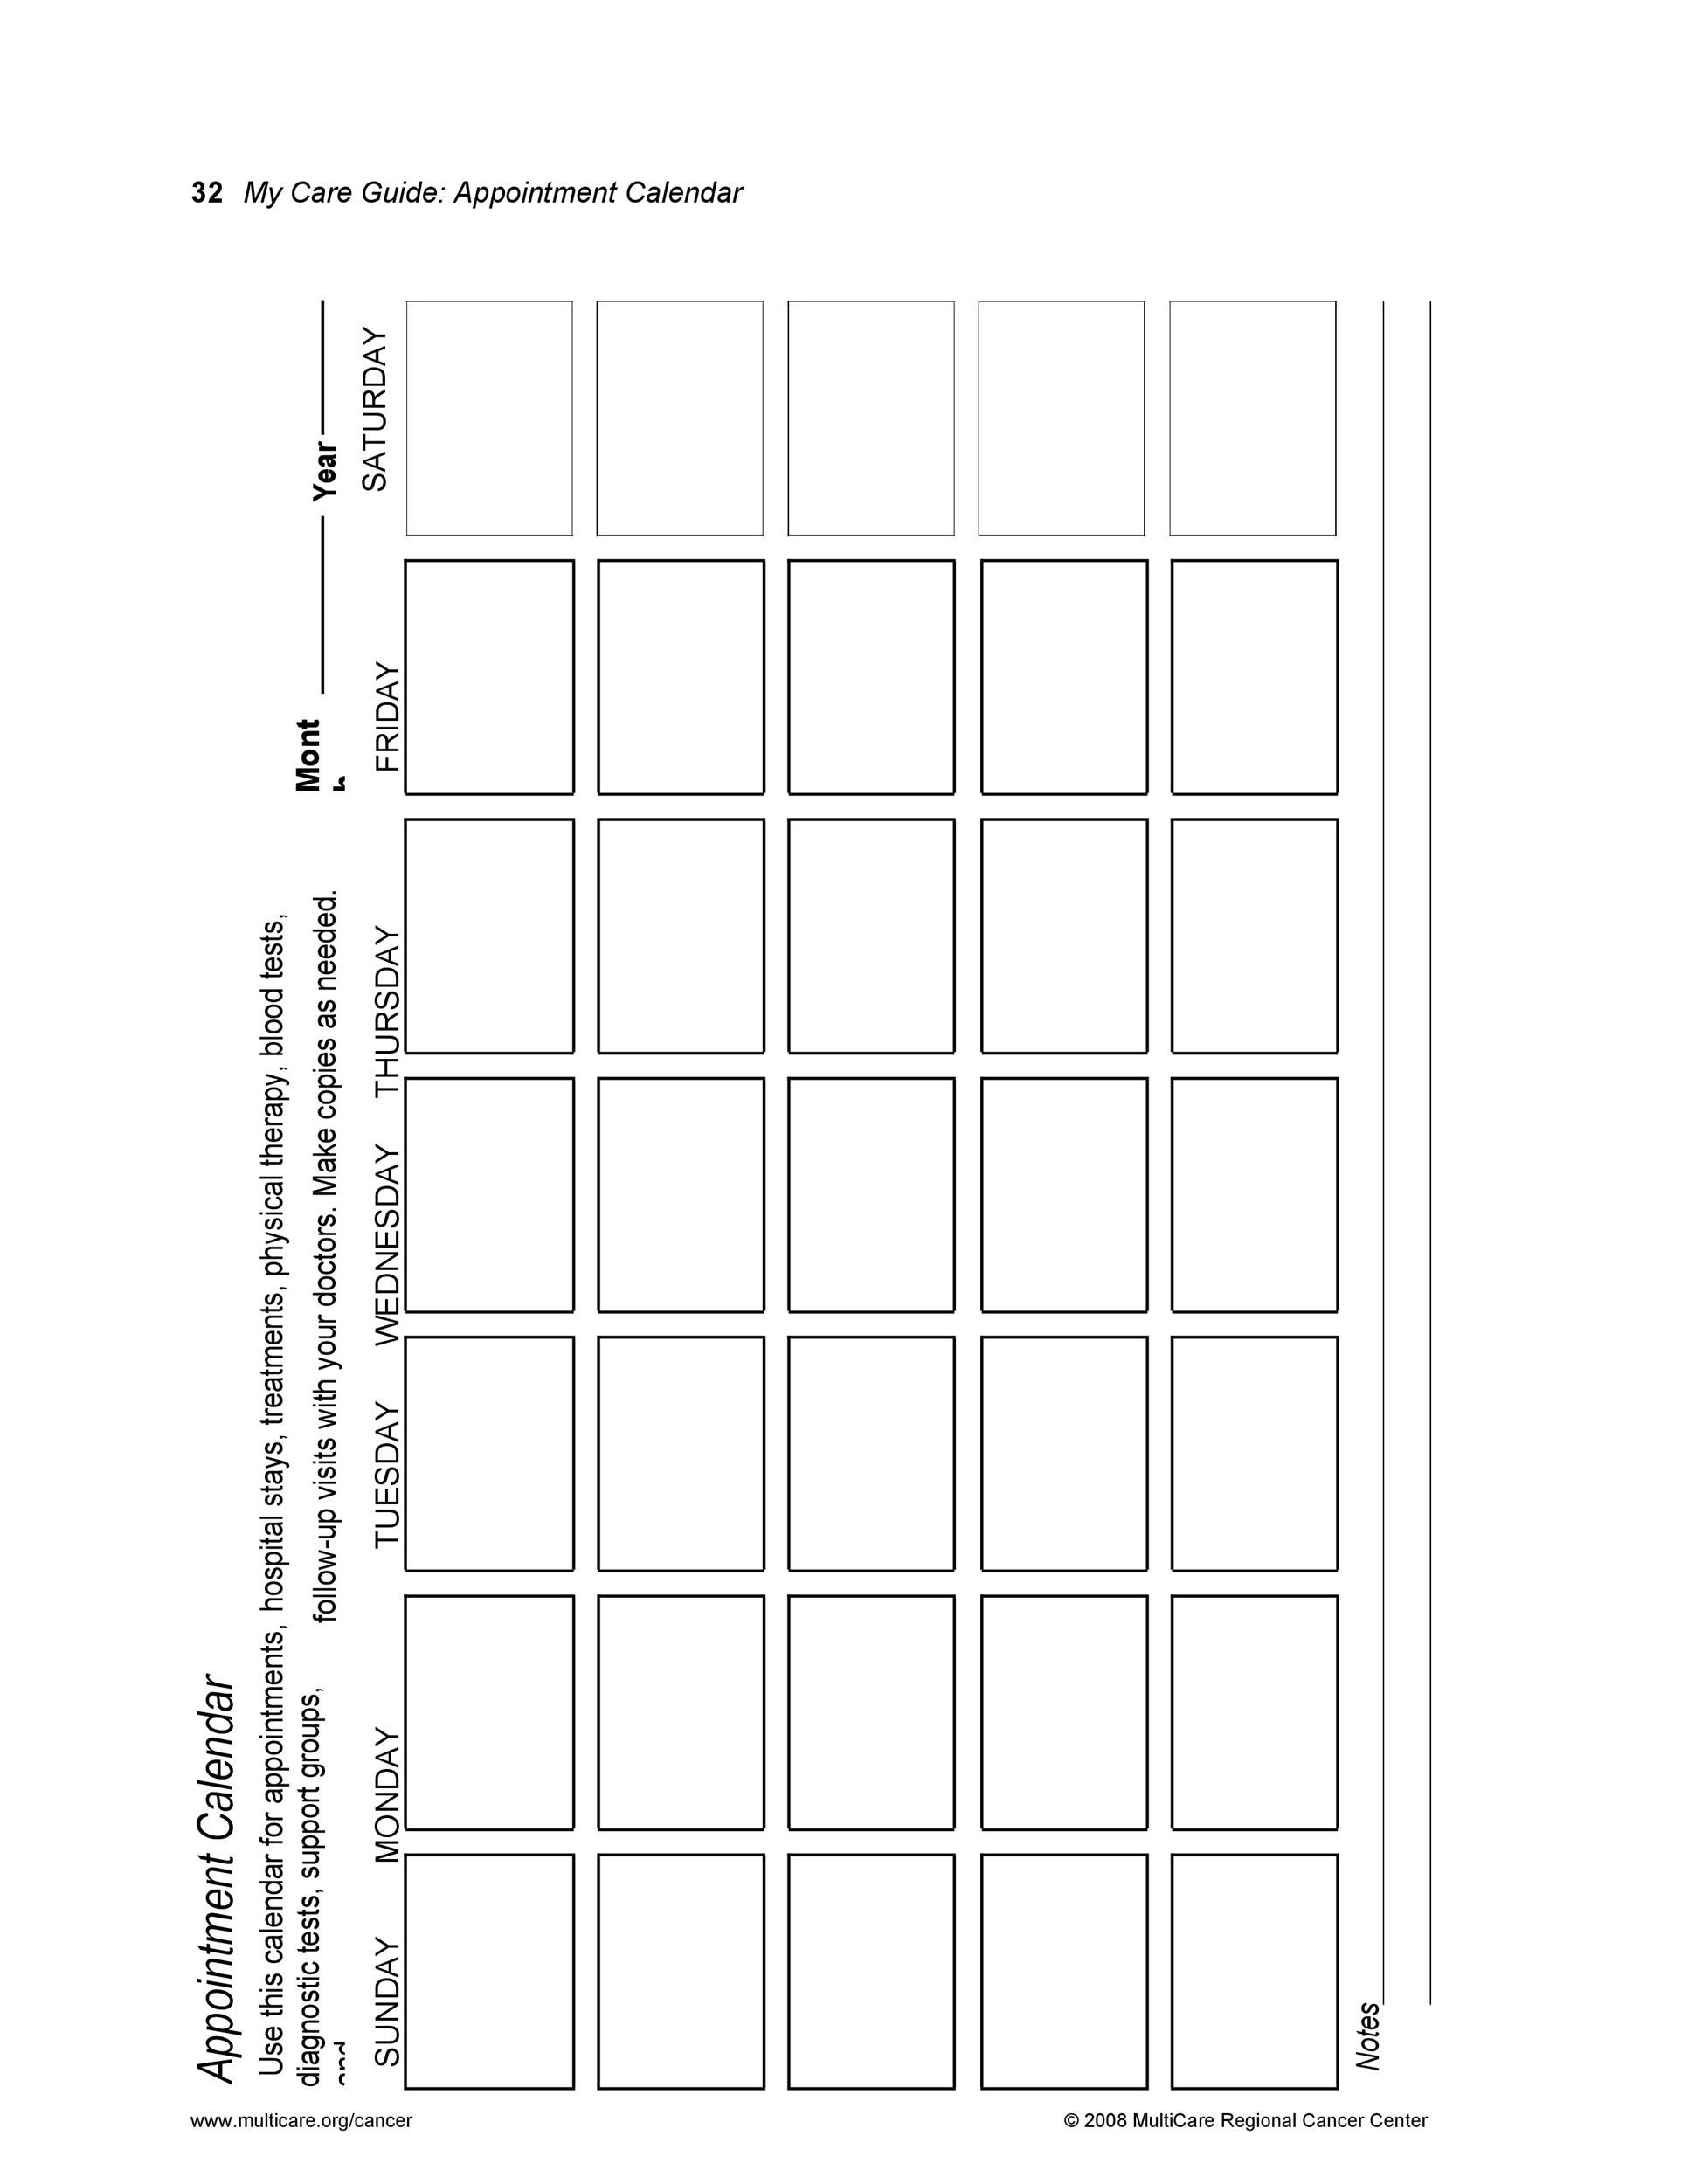 45 printable appointment schedule templates   u0026 appointment calendars